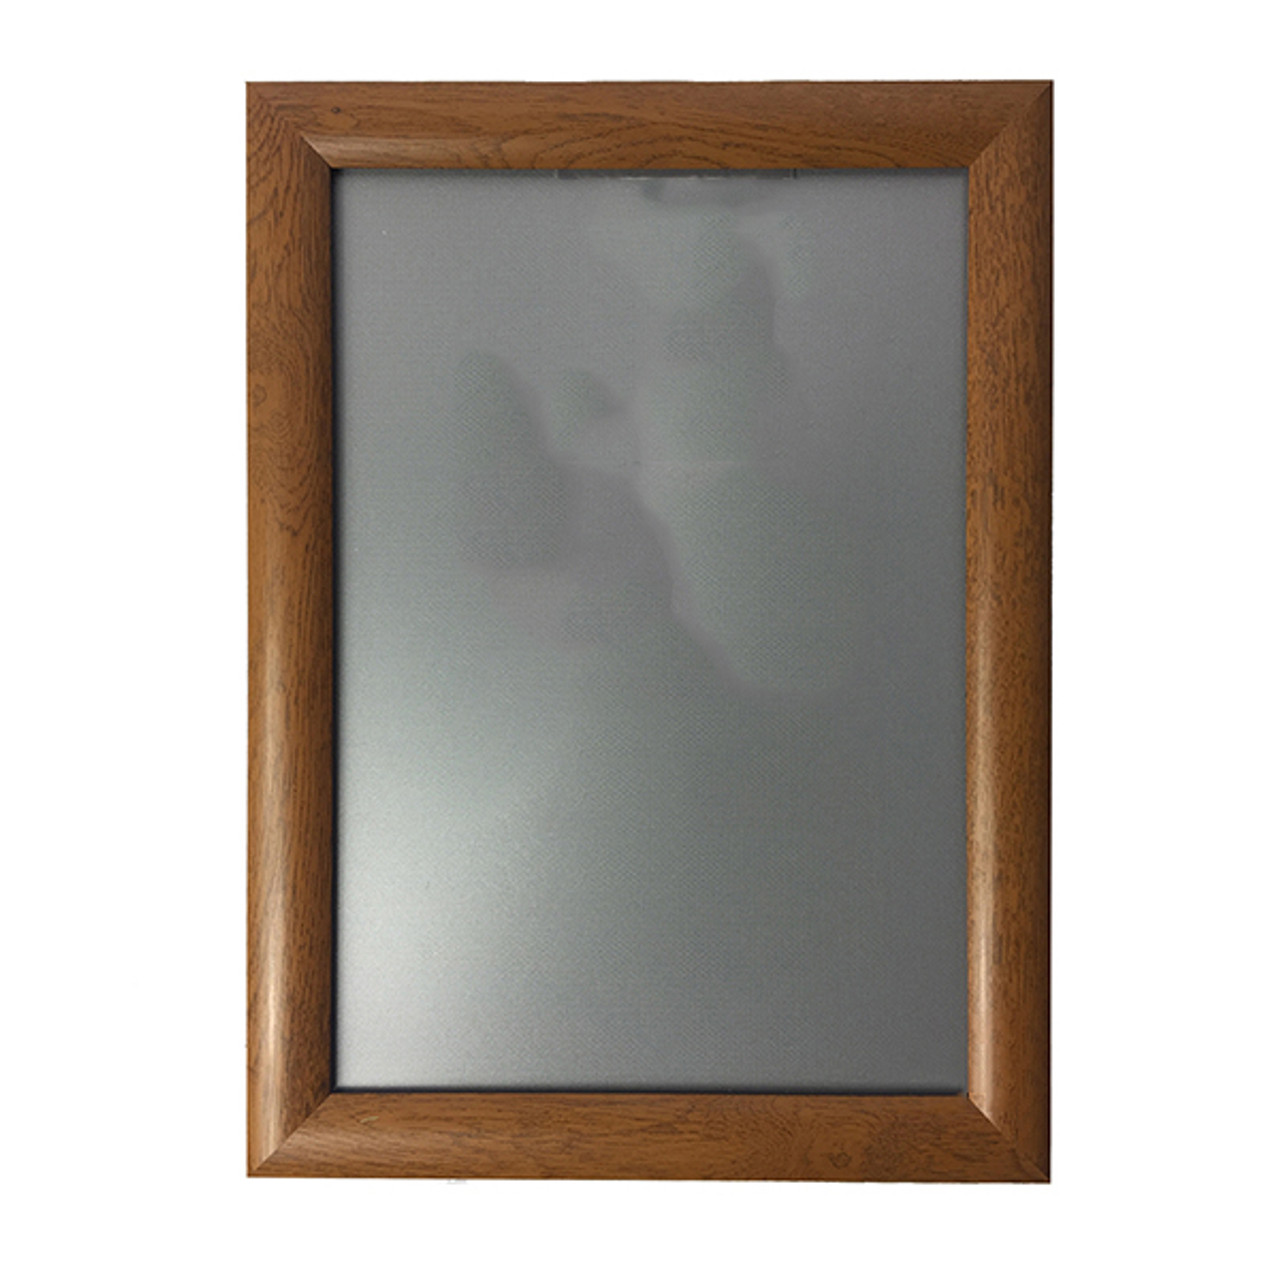 25mm Wood Looking Snap Frames